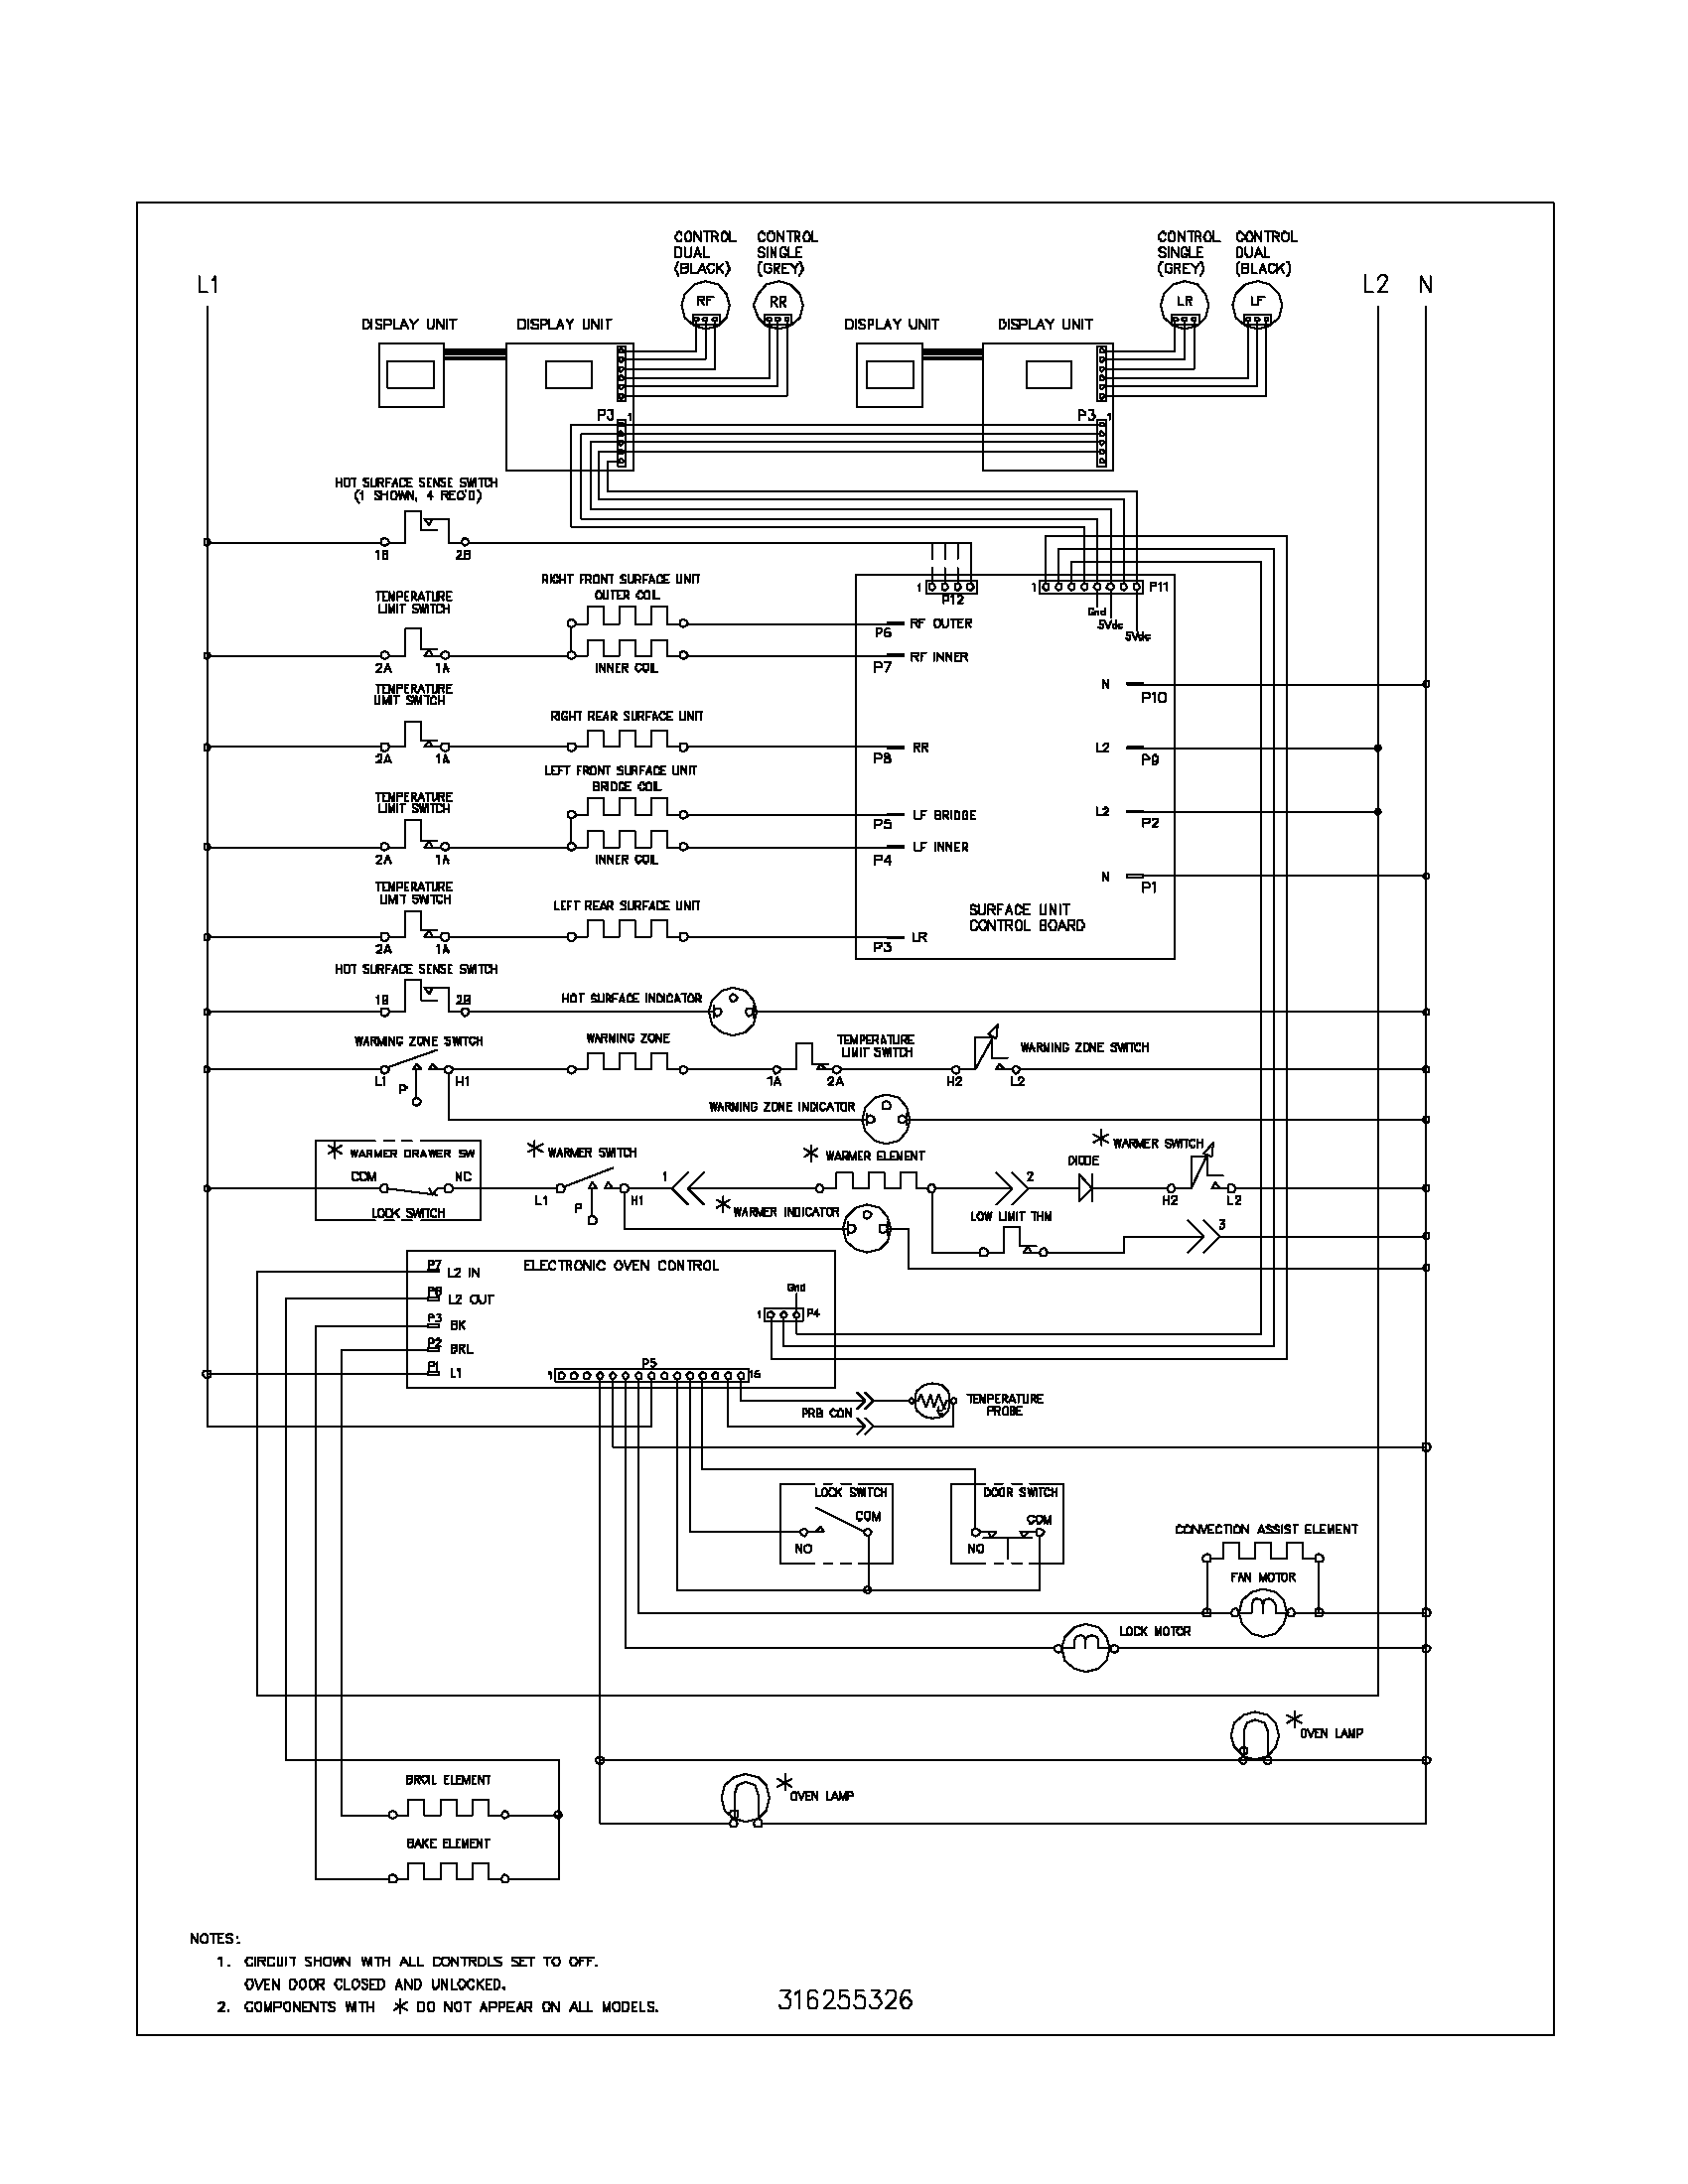 wiring schematic parts stove wiring diagram & name original wiring diagram jpg views  at panicattacktreatment.co